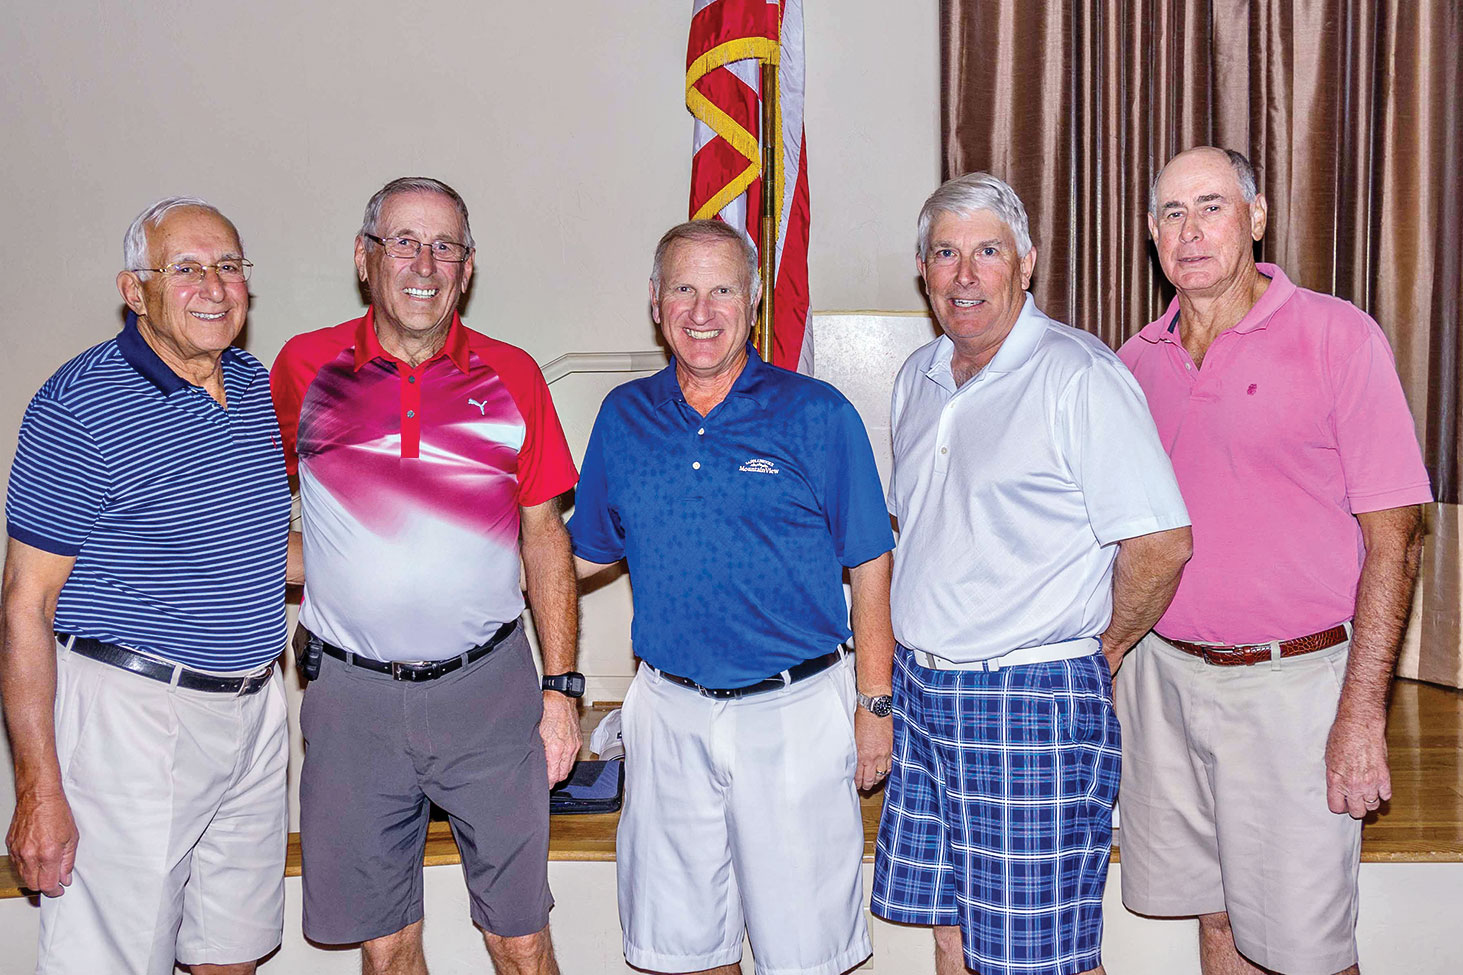 Left to right: Finalists Ed Skaff and Jerry Westra, President Dennis Marchand and Finalists Jon Michels and Ron Tie